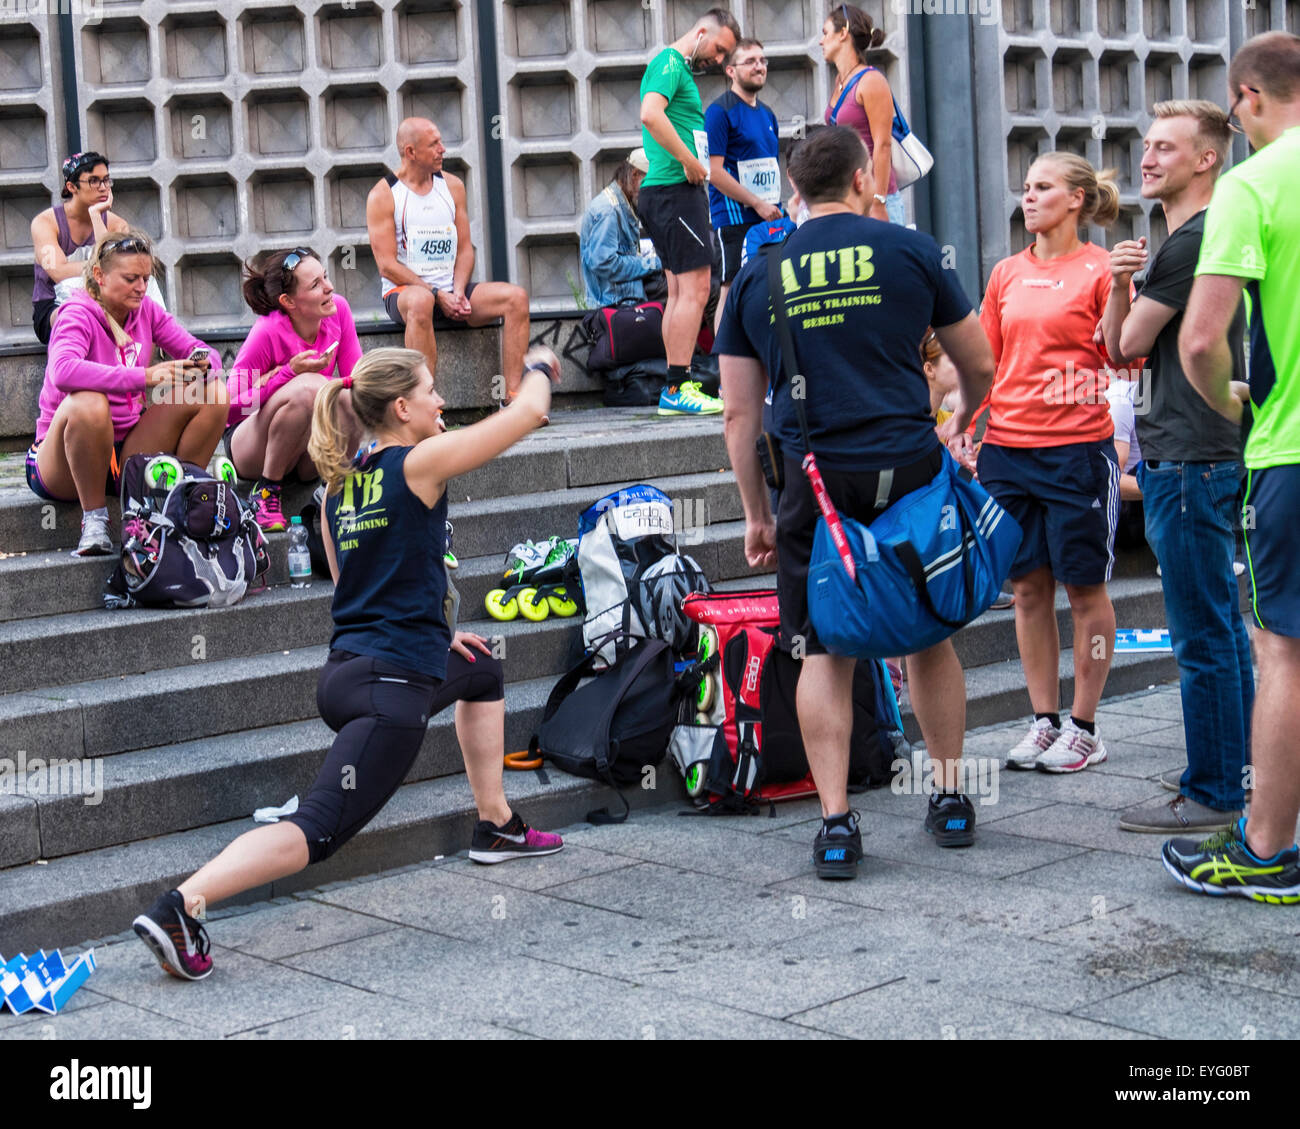 Berlin Kurfürstendamm, Athletes and runners wait for start of annual urban night fun run, the Berliner City - Stock Image